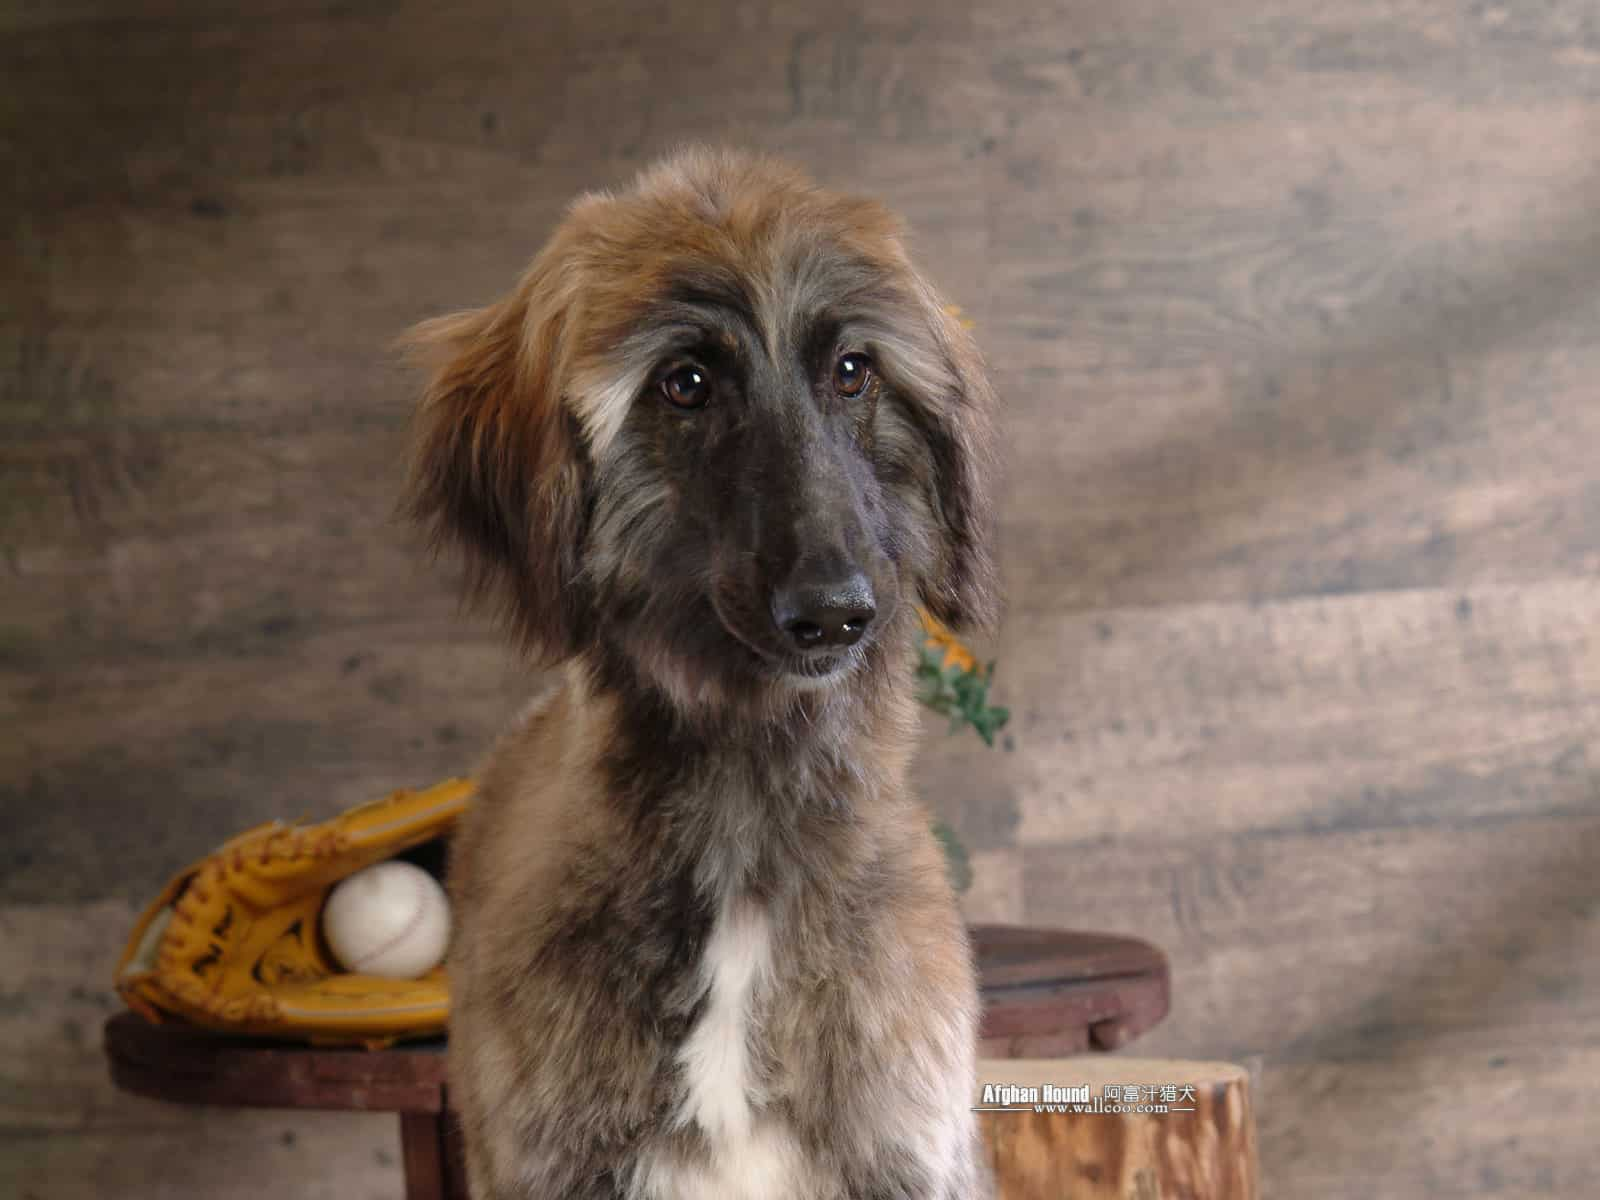 Afghan Hound Breed Info And Care